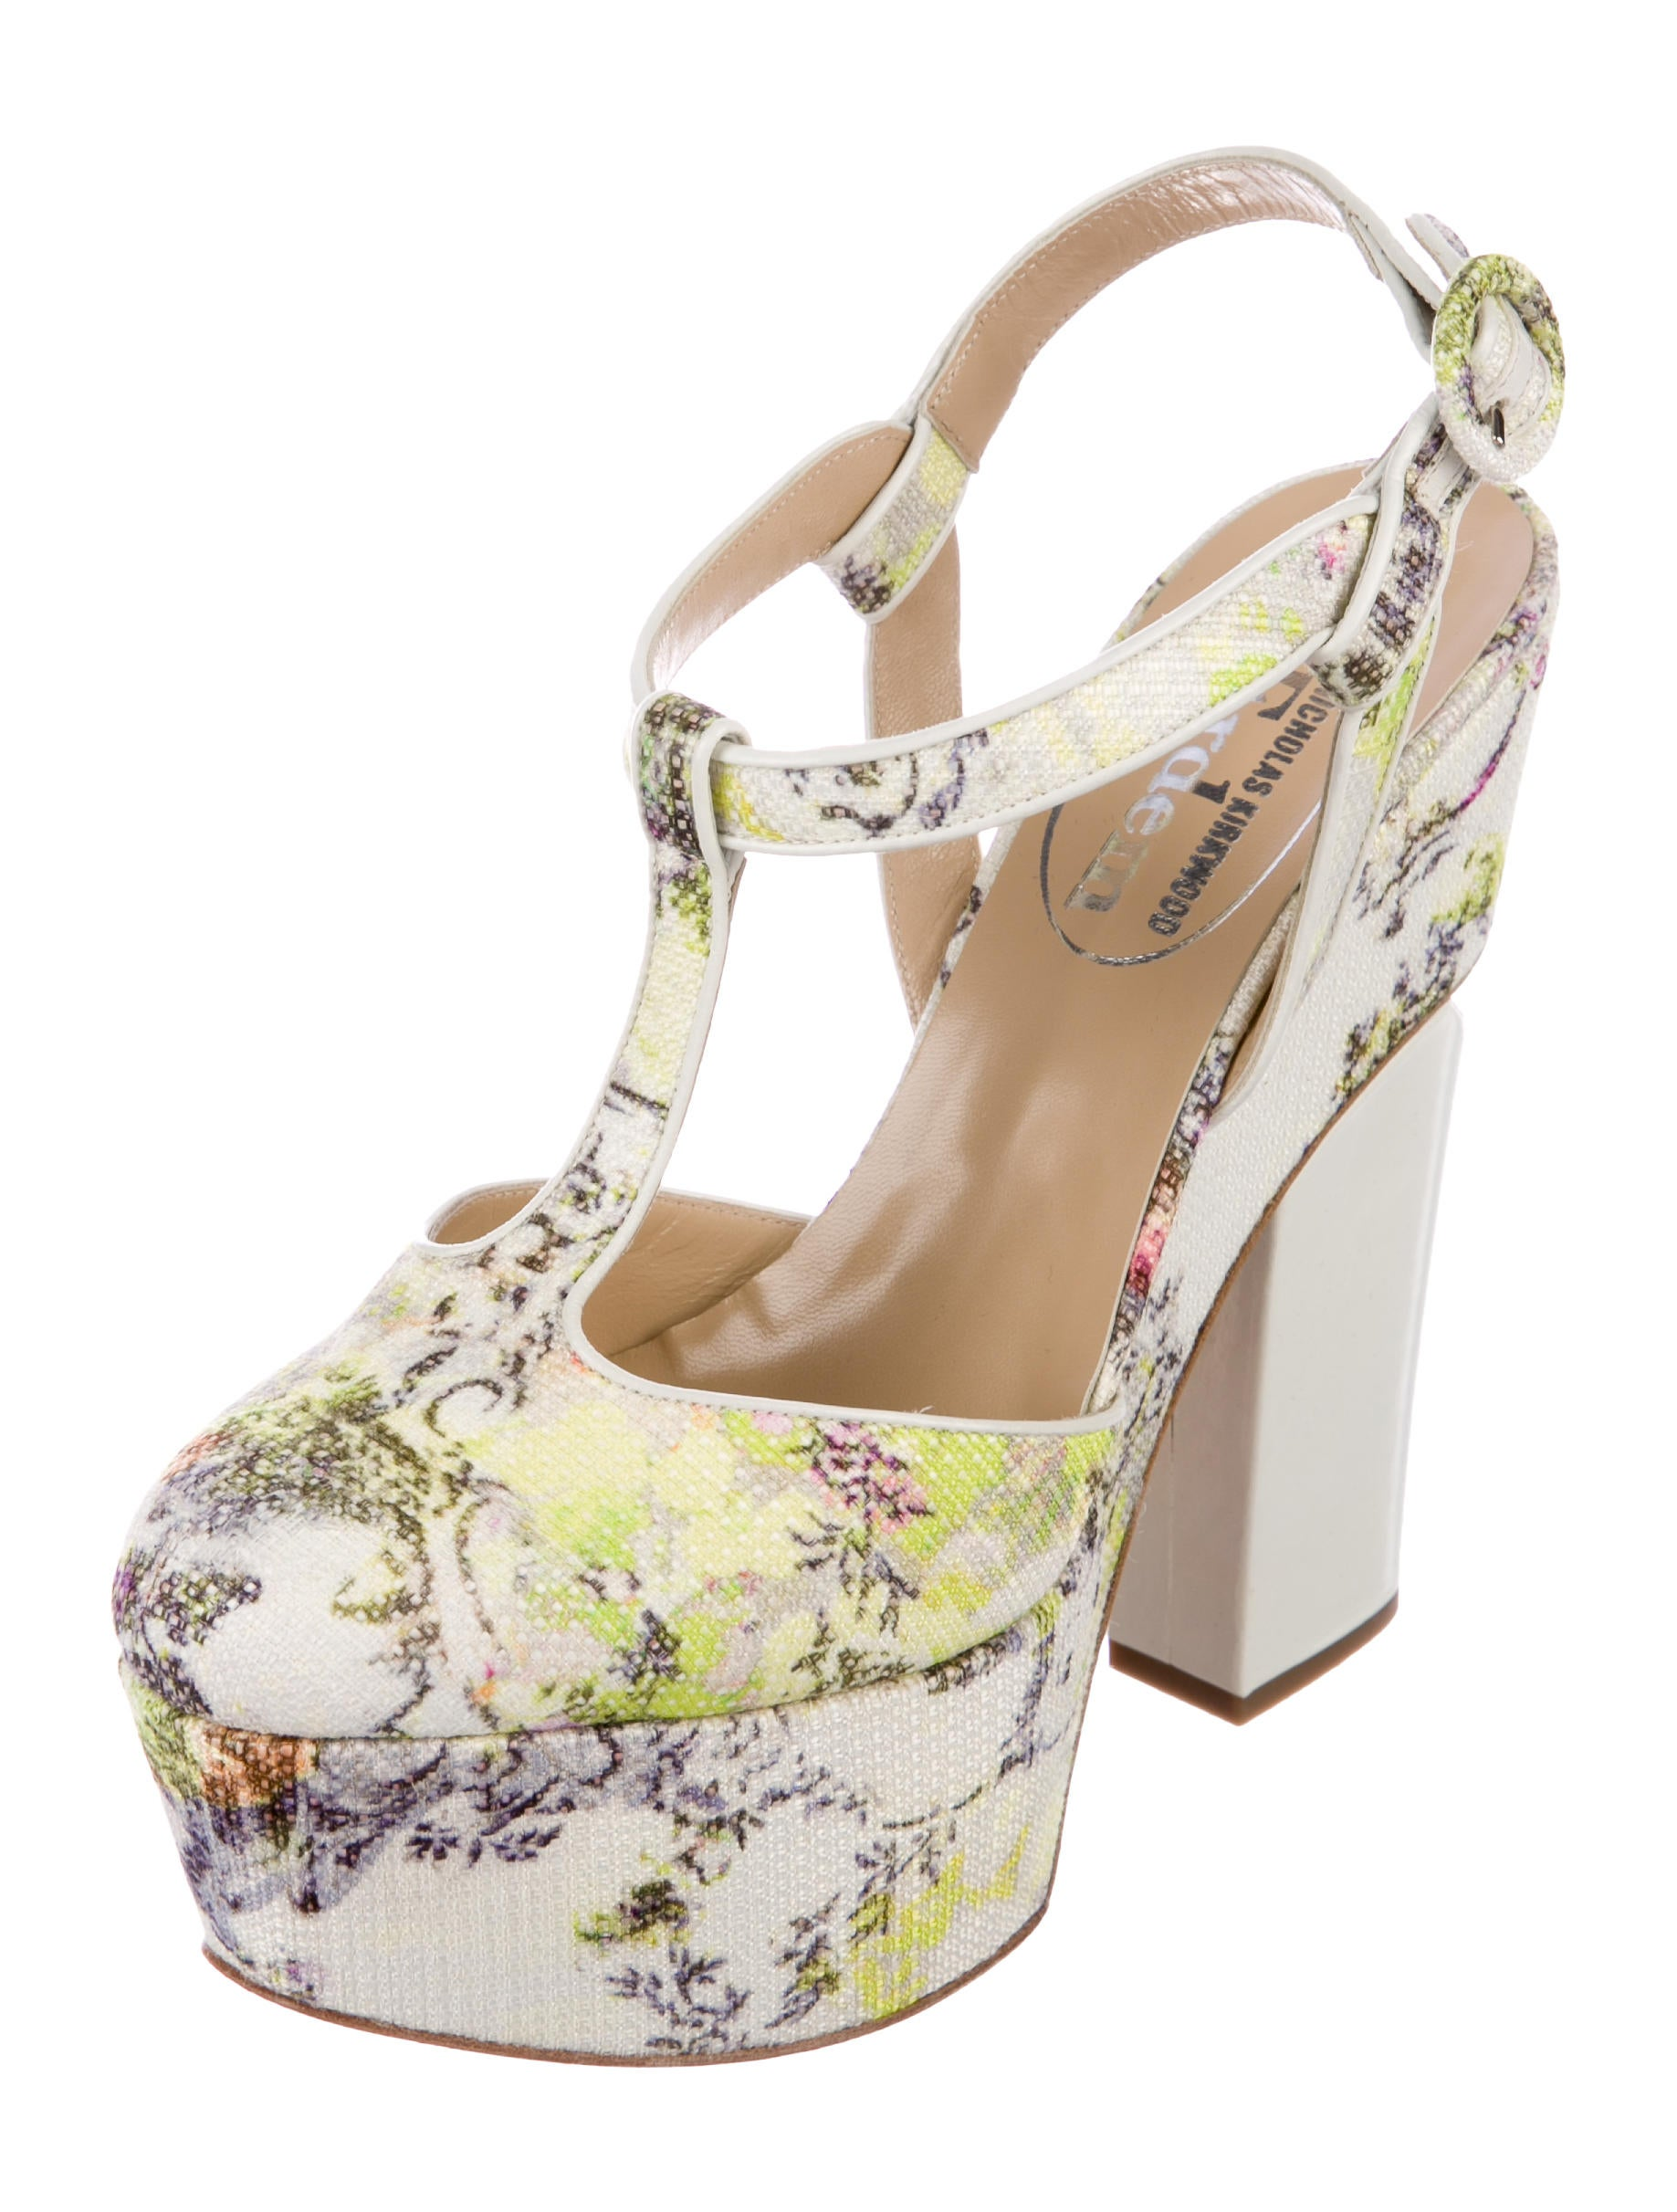 Nicholas Kirkwood x Erdem Chinon-Print Platform Pumps wide range of online free shipping authentic free shipping pay with paypal genuine sale online clearance pictures mdmg8pF